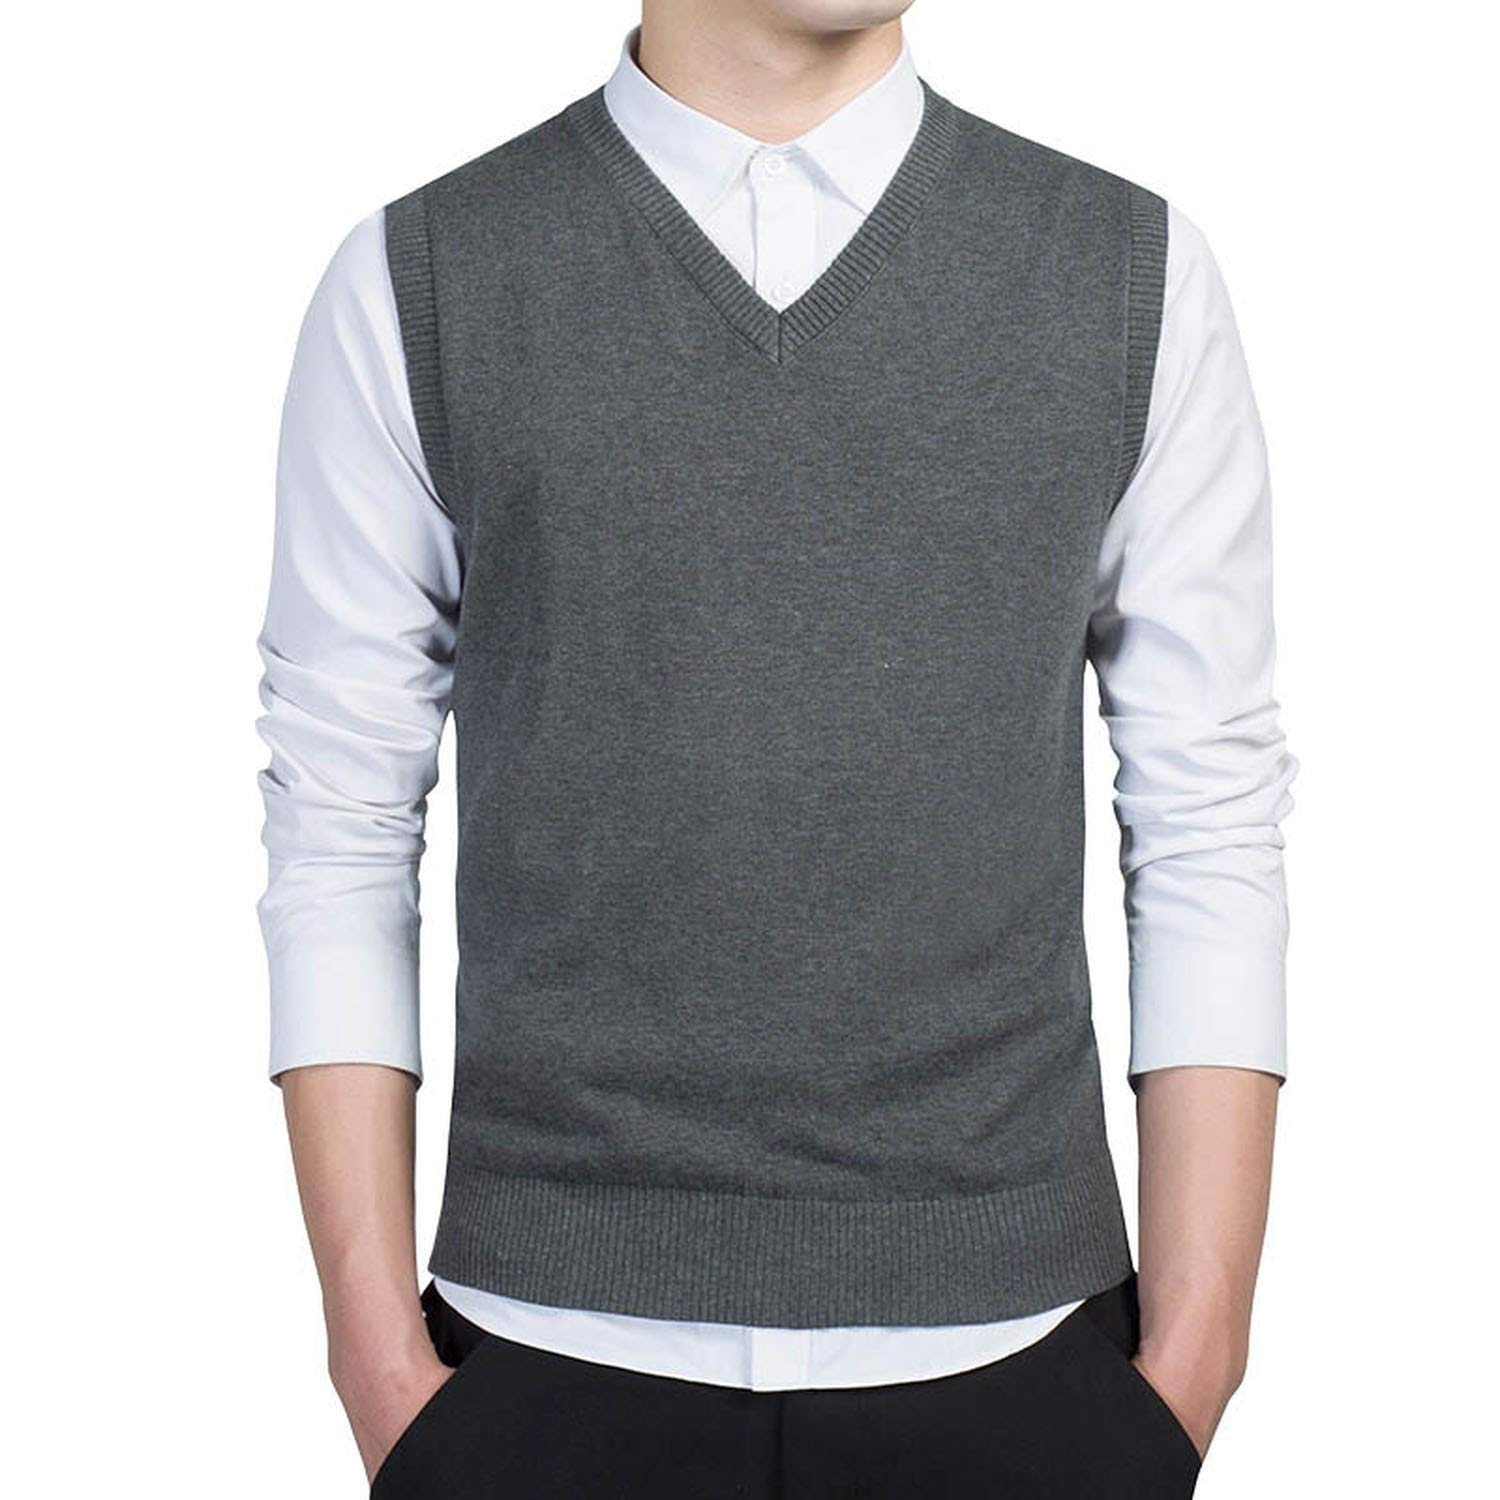 cant be satisfied Pullover Sweater Men Autumn V Neck Slim Vest Sweaters Sleeveless Warm Sweater Cotton